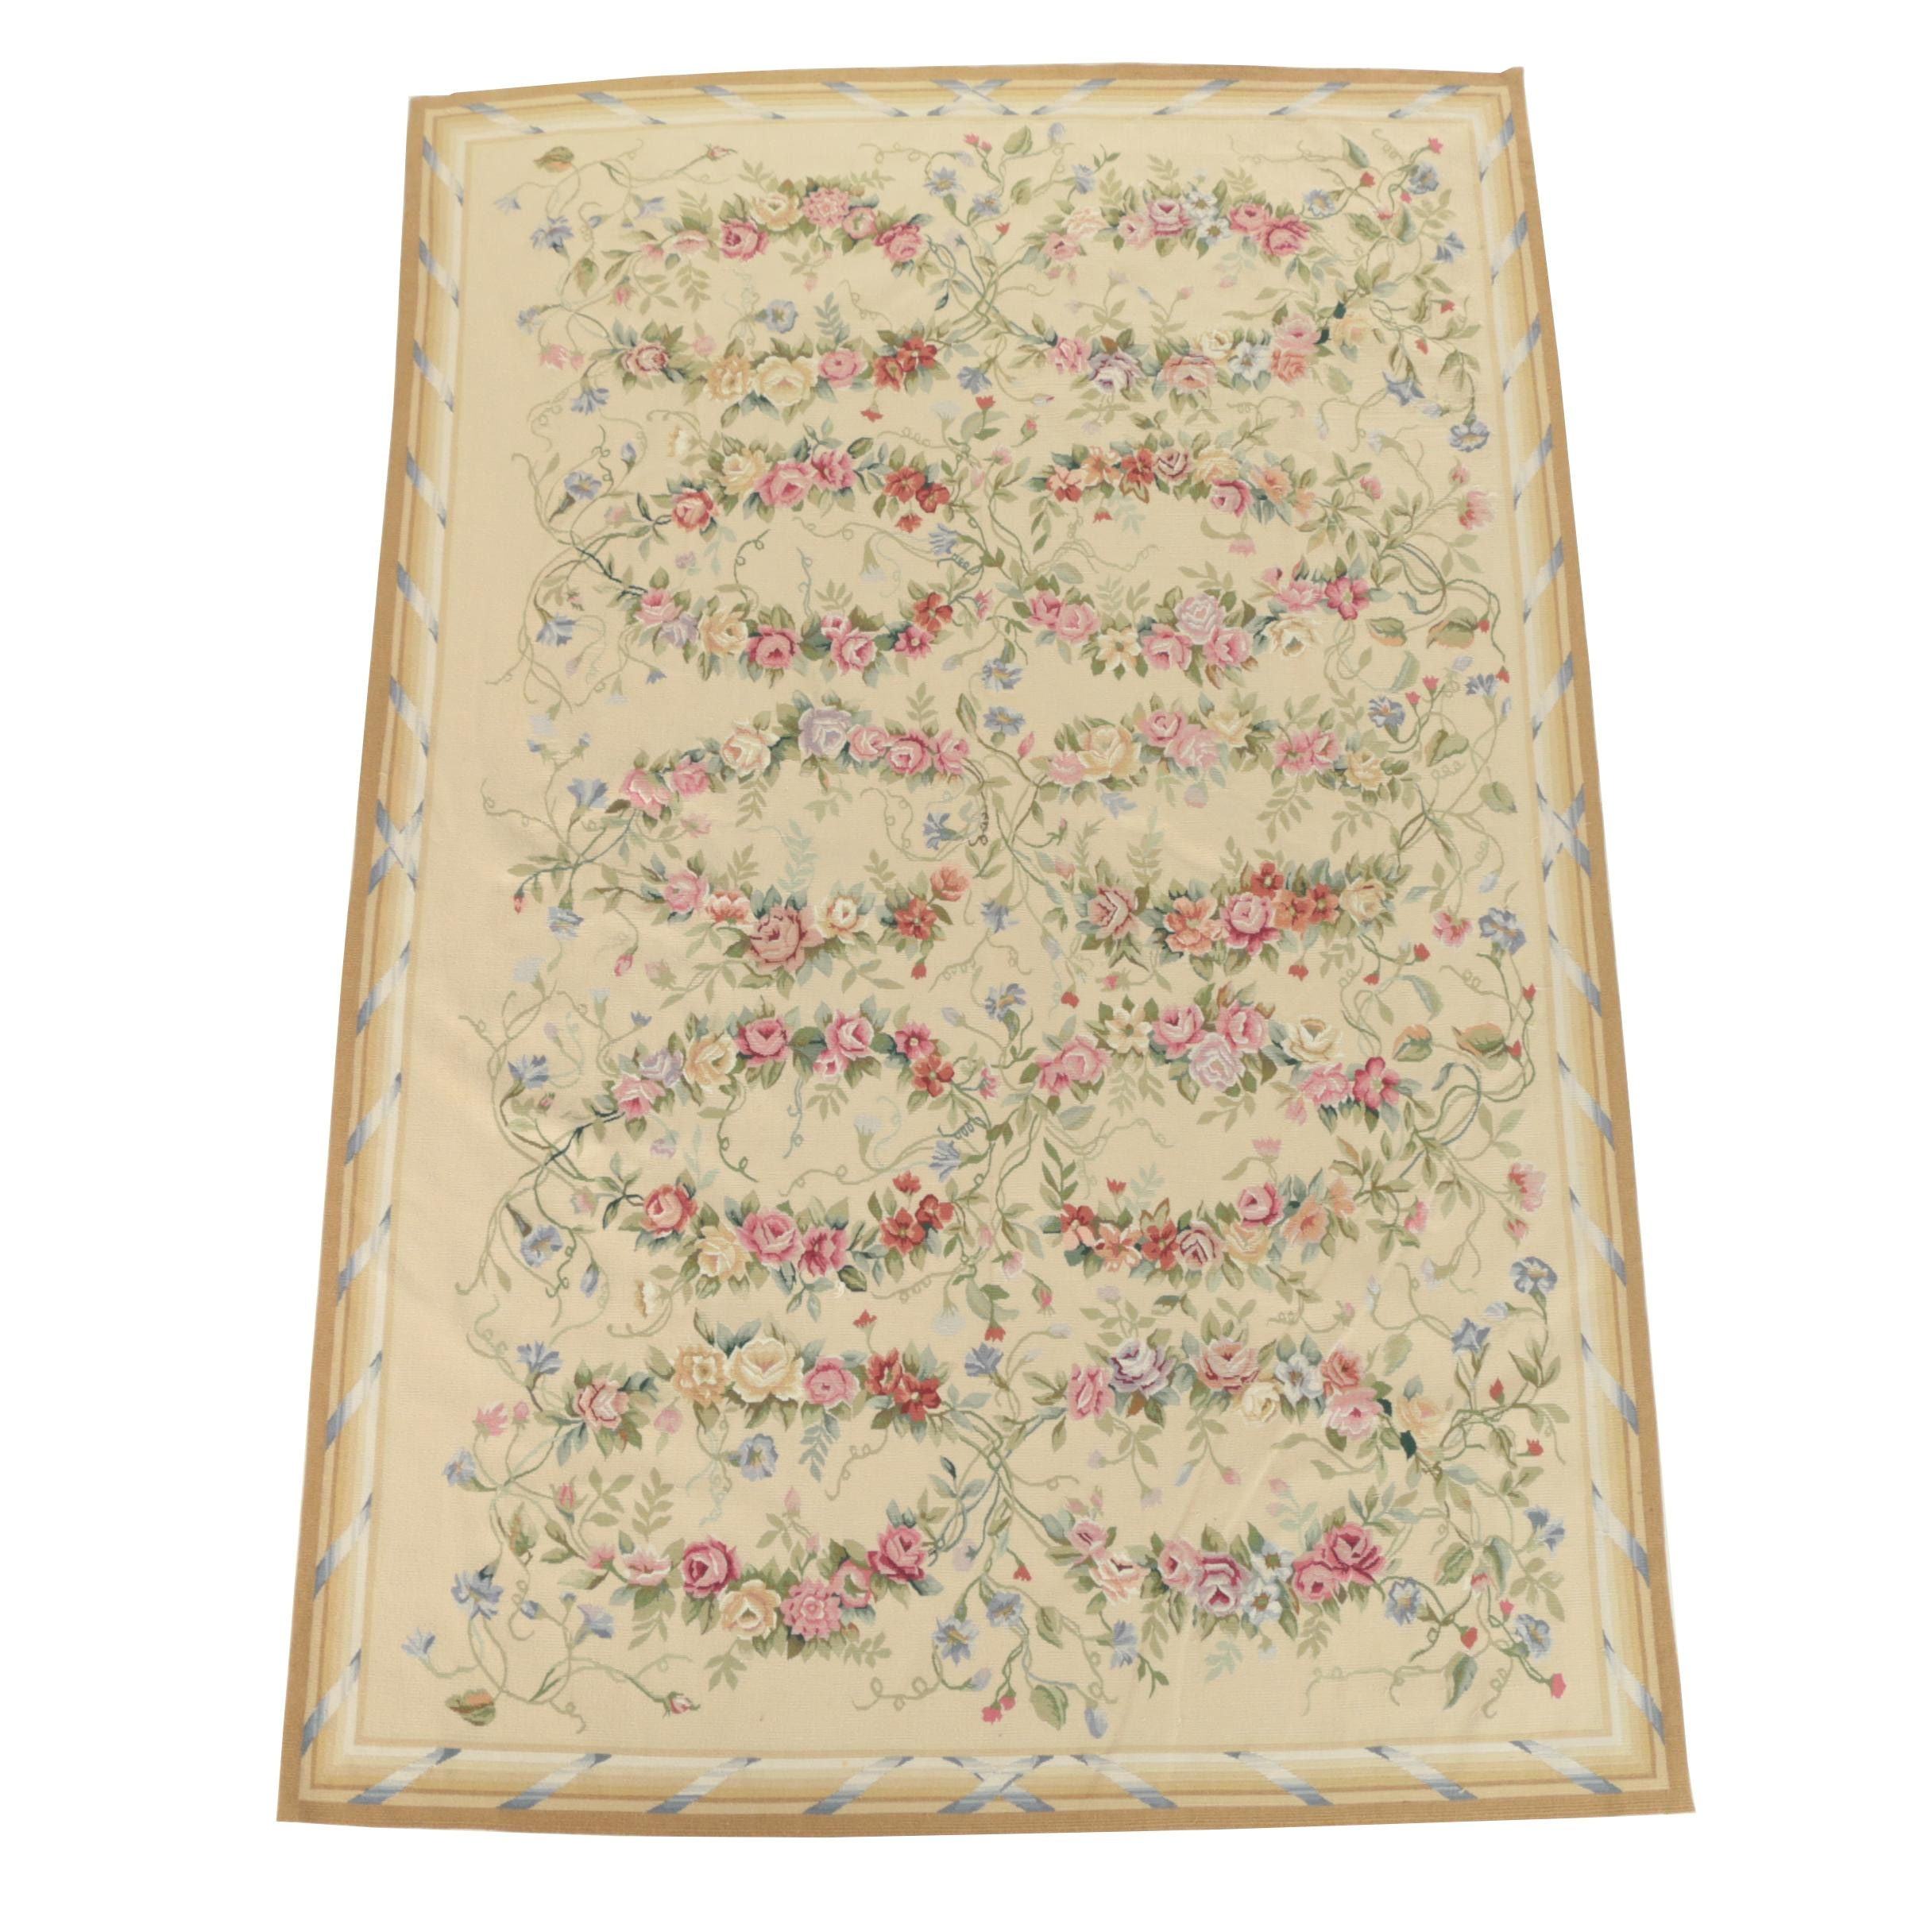 Handmade Needlepoint Floral Themed Wool Area Rug